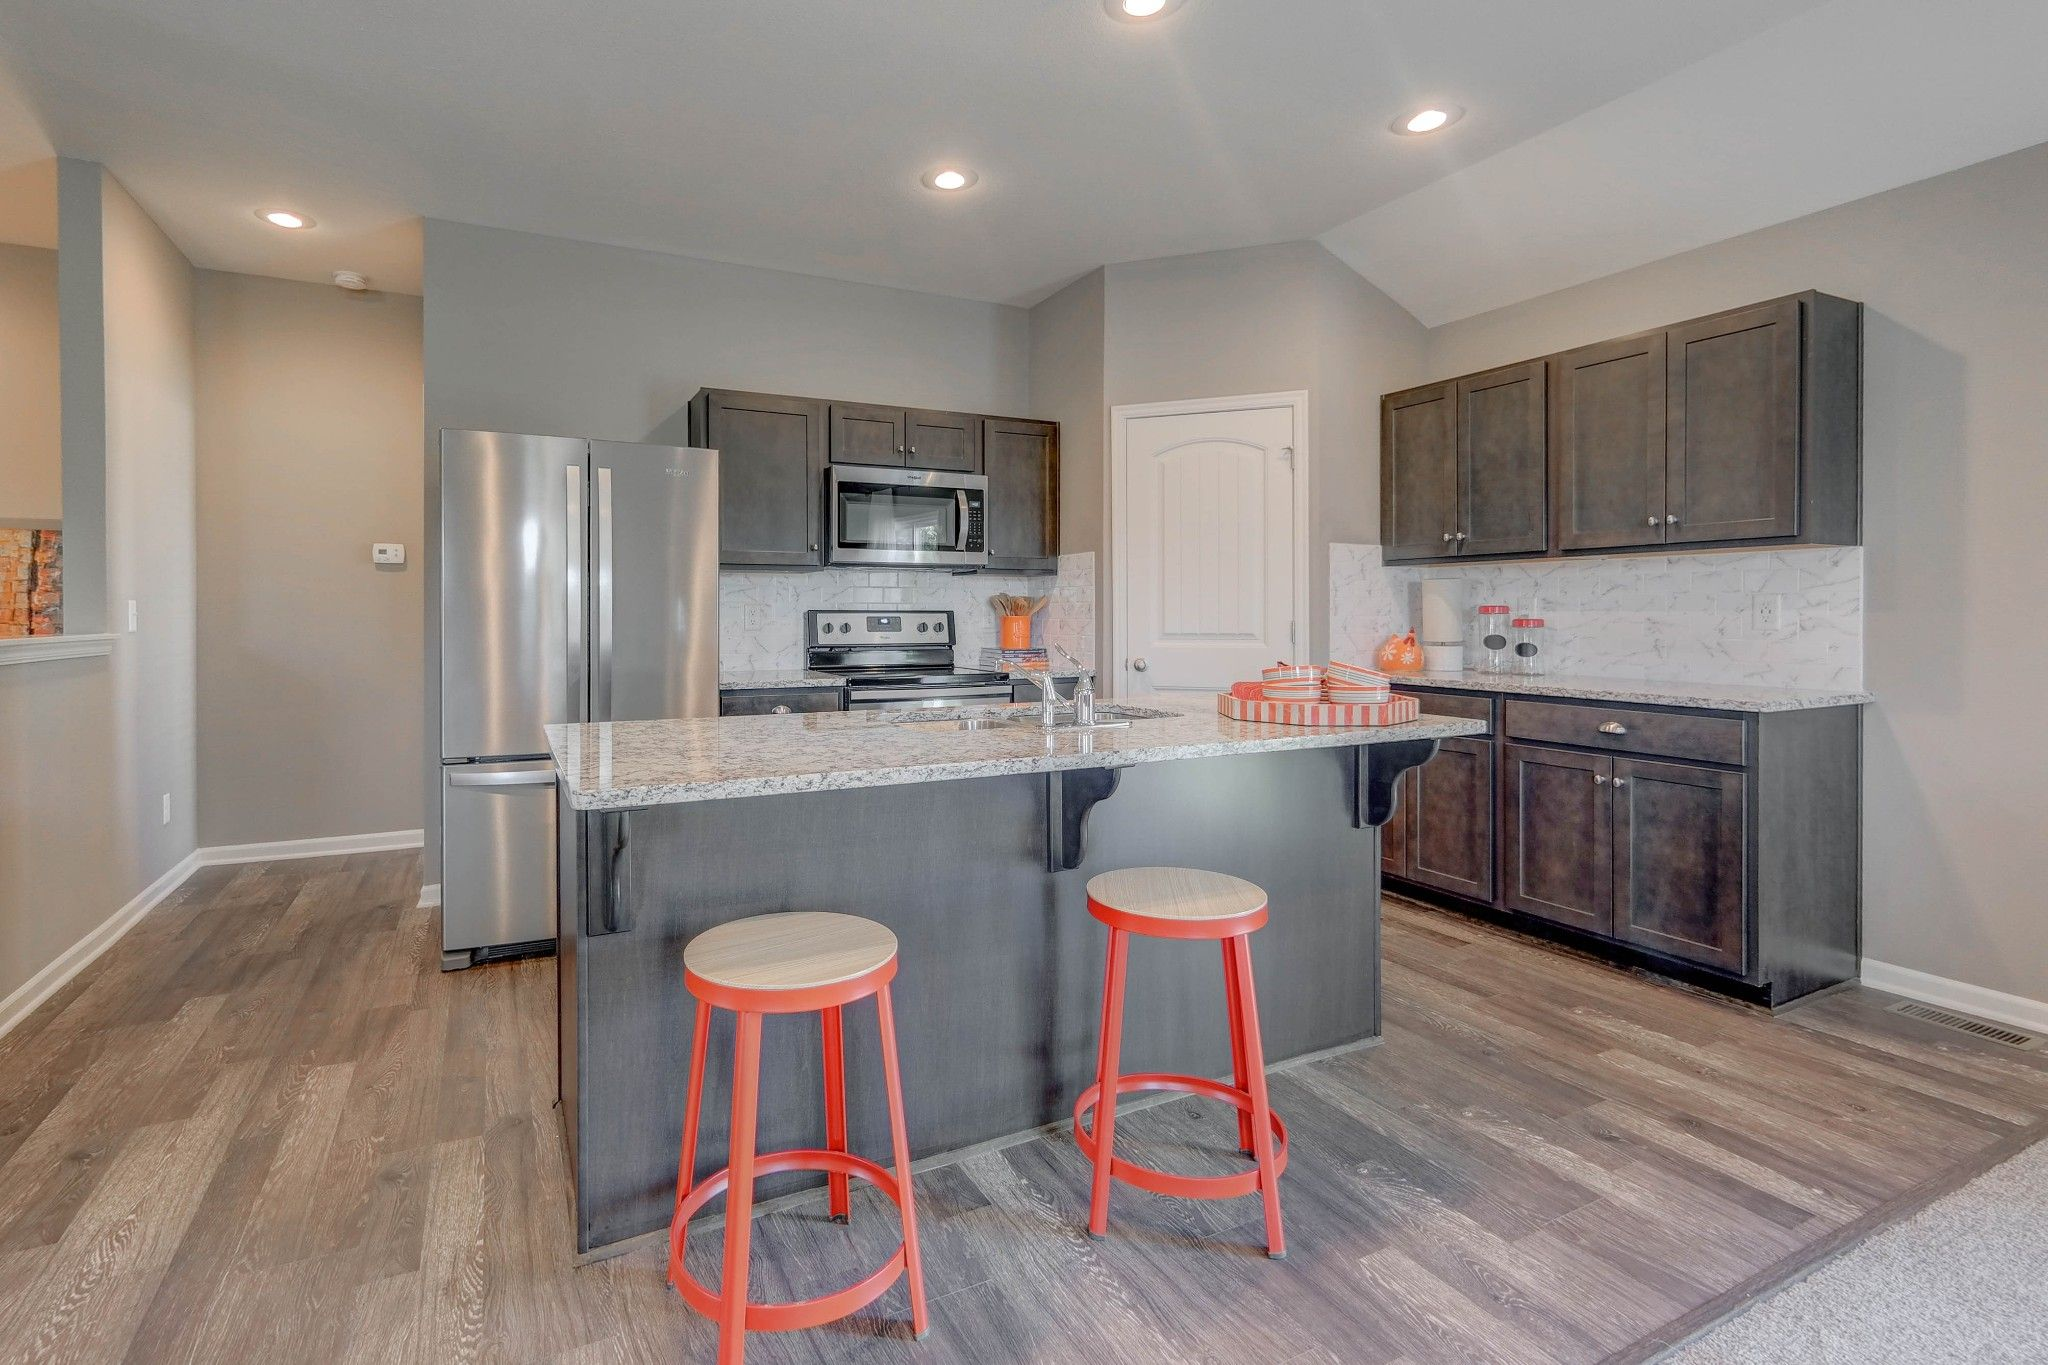 Kitchen featured in the Roanoke - IA By Summit Homes in Des Moines, IA